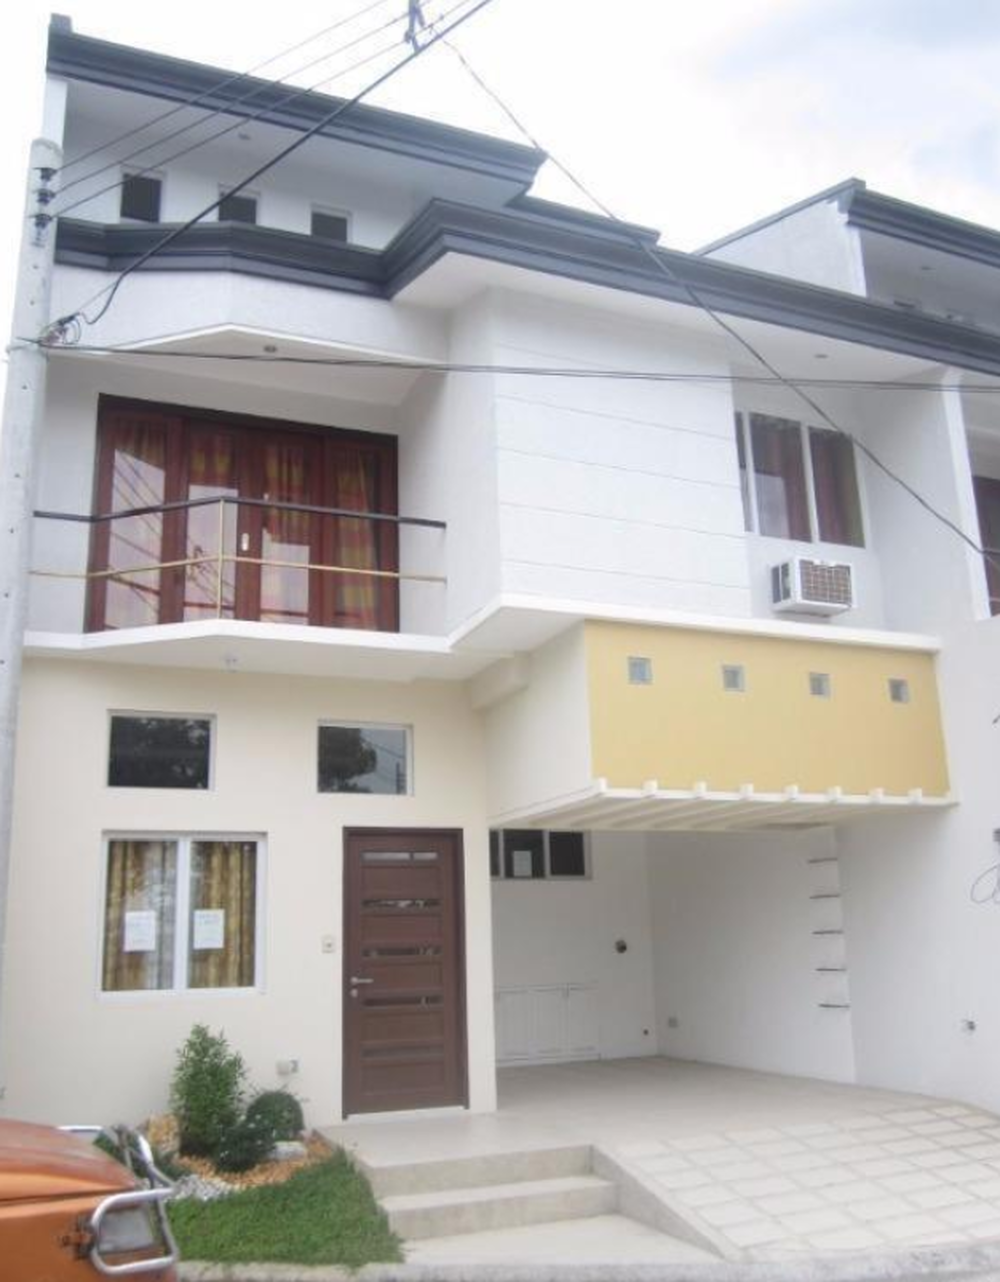 4 bedroom townhouse for sale in angeles city findit angeles classifieds property for sale by. Black Bedroom Furniture Sets. Home Design Ideas